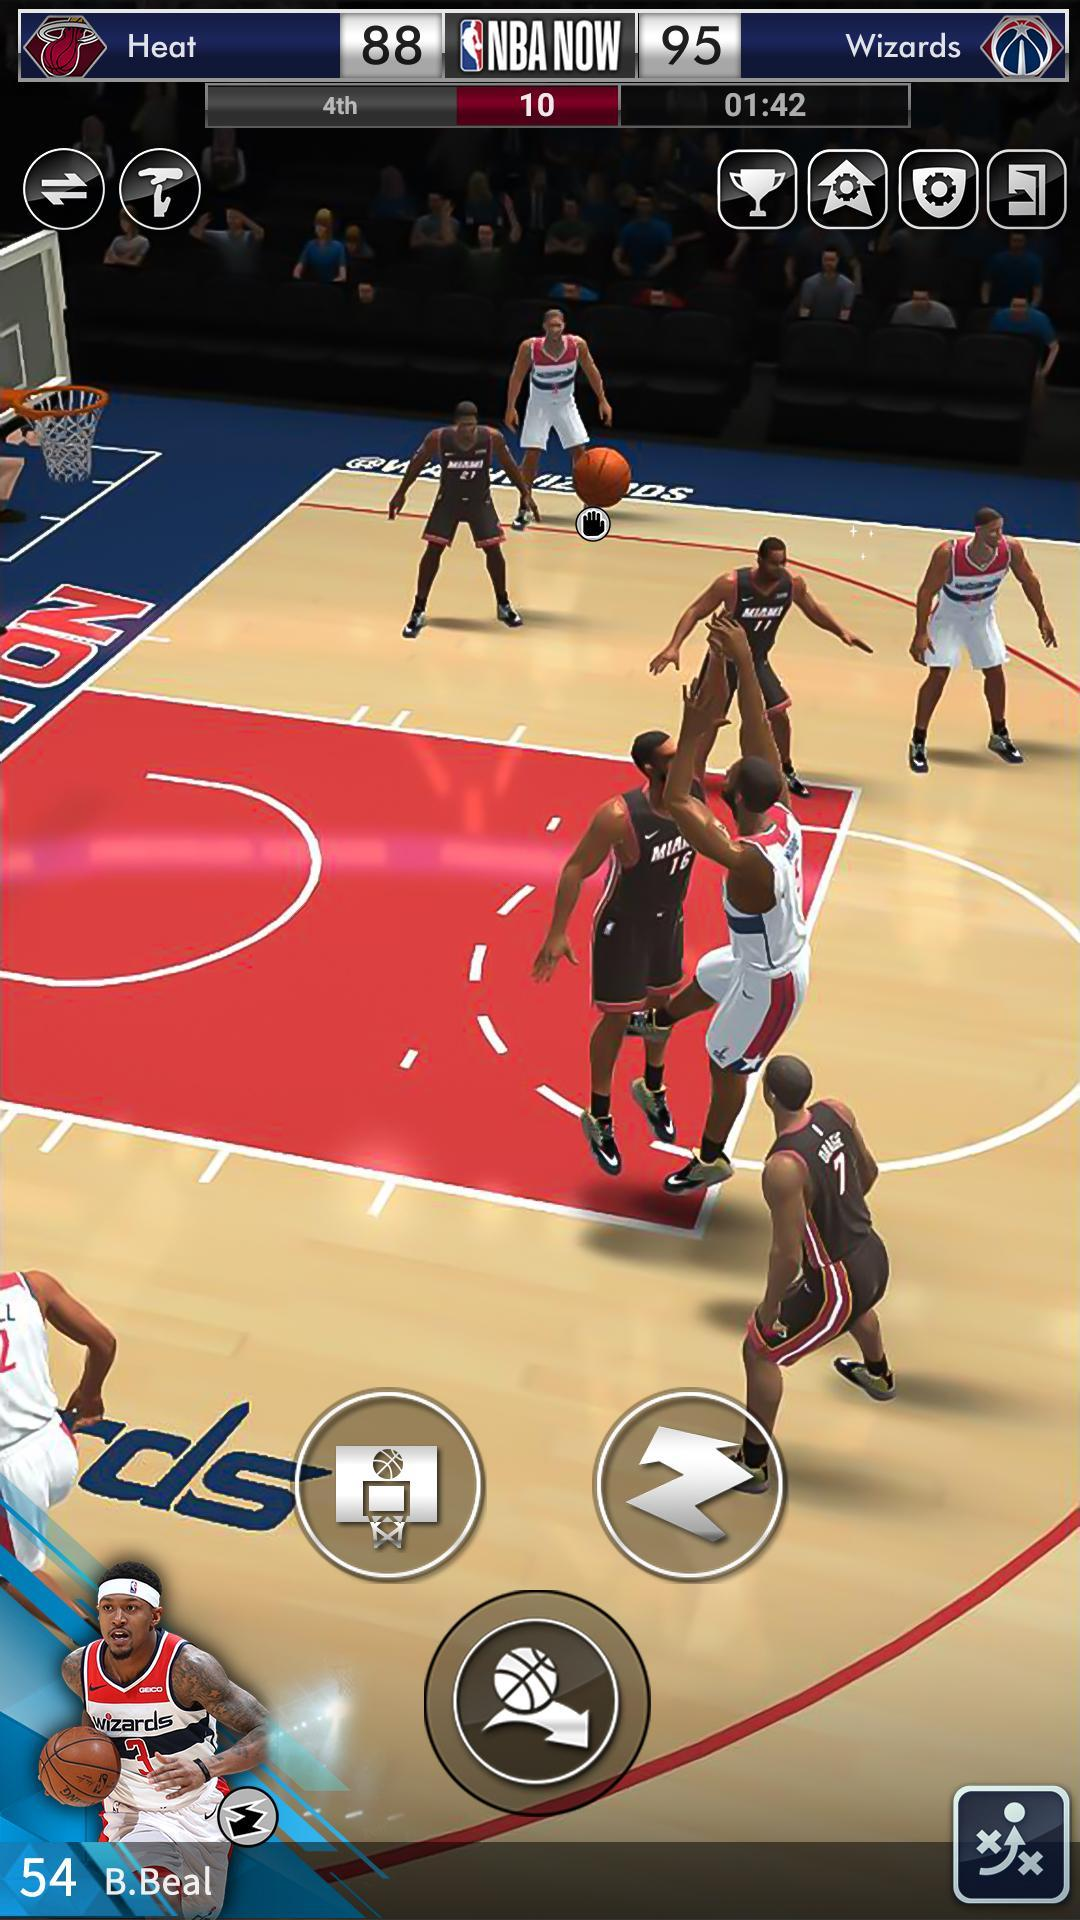 NBA NOW Mobile Basketball Game 1.5.4 Screenshot 18